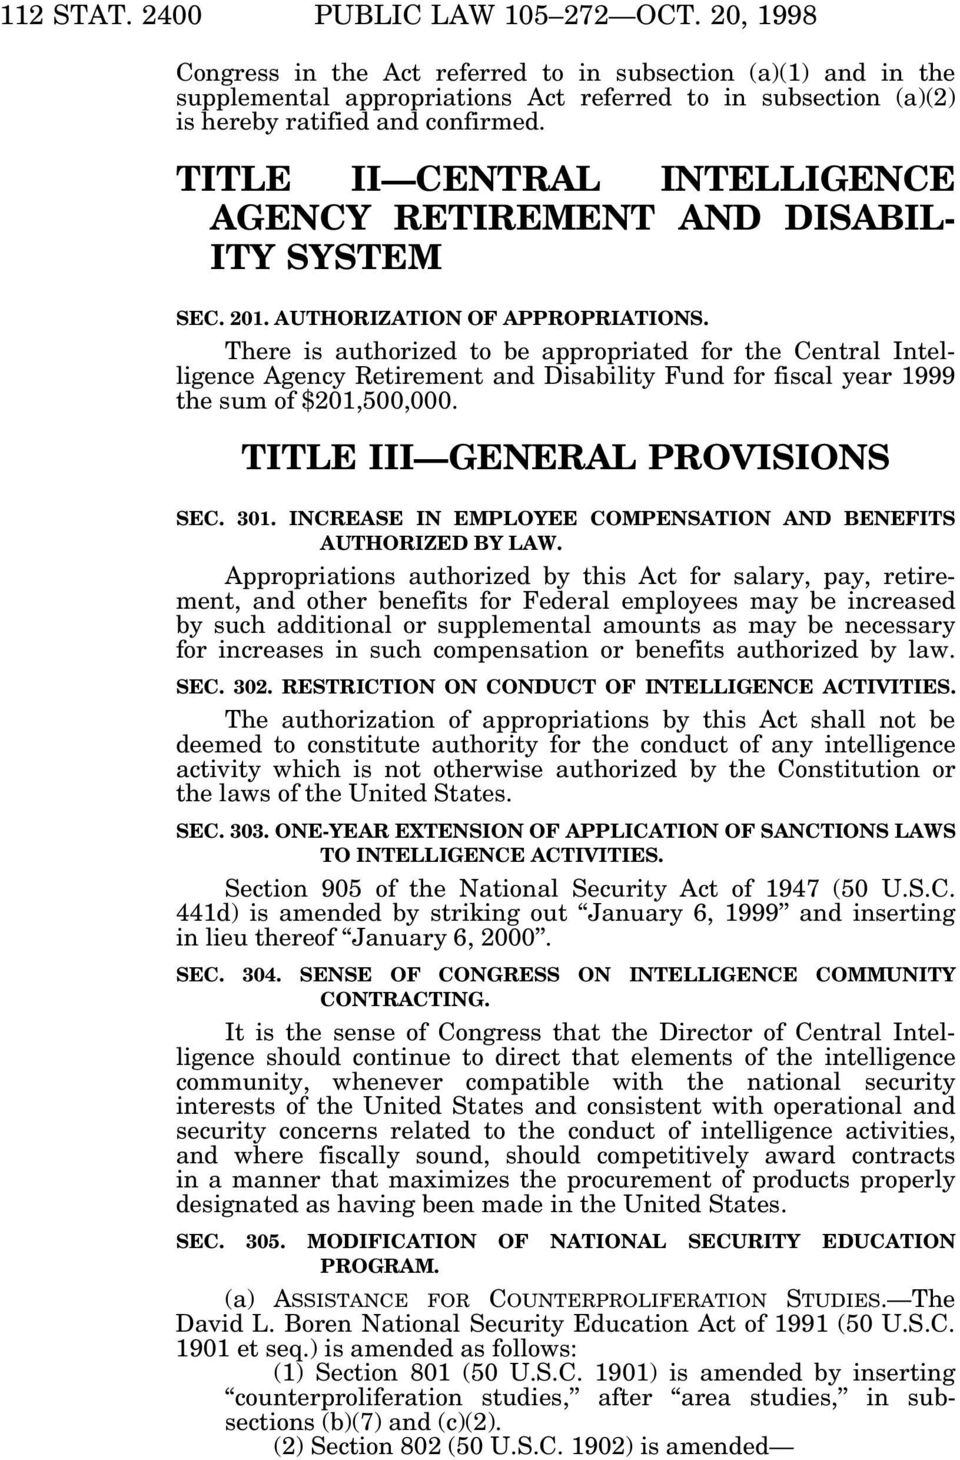 TITLE II CENTRAL INTELLIGENCE AGENCY RETIREMENT AND DISABIL- ITY SYSTEM SEC. 201. AUTHORIZATION OF APPROPRIATIONS.